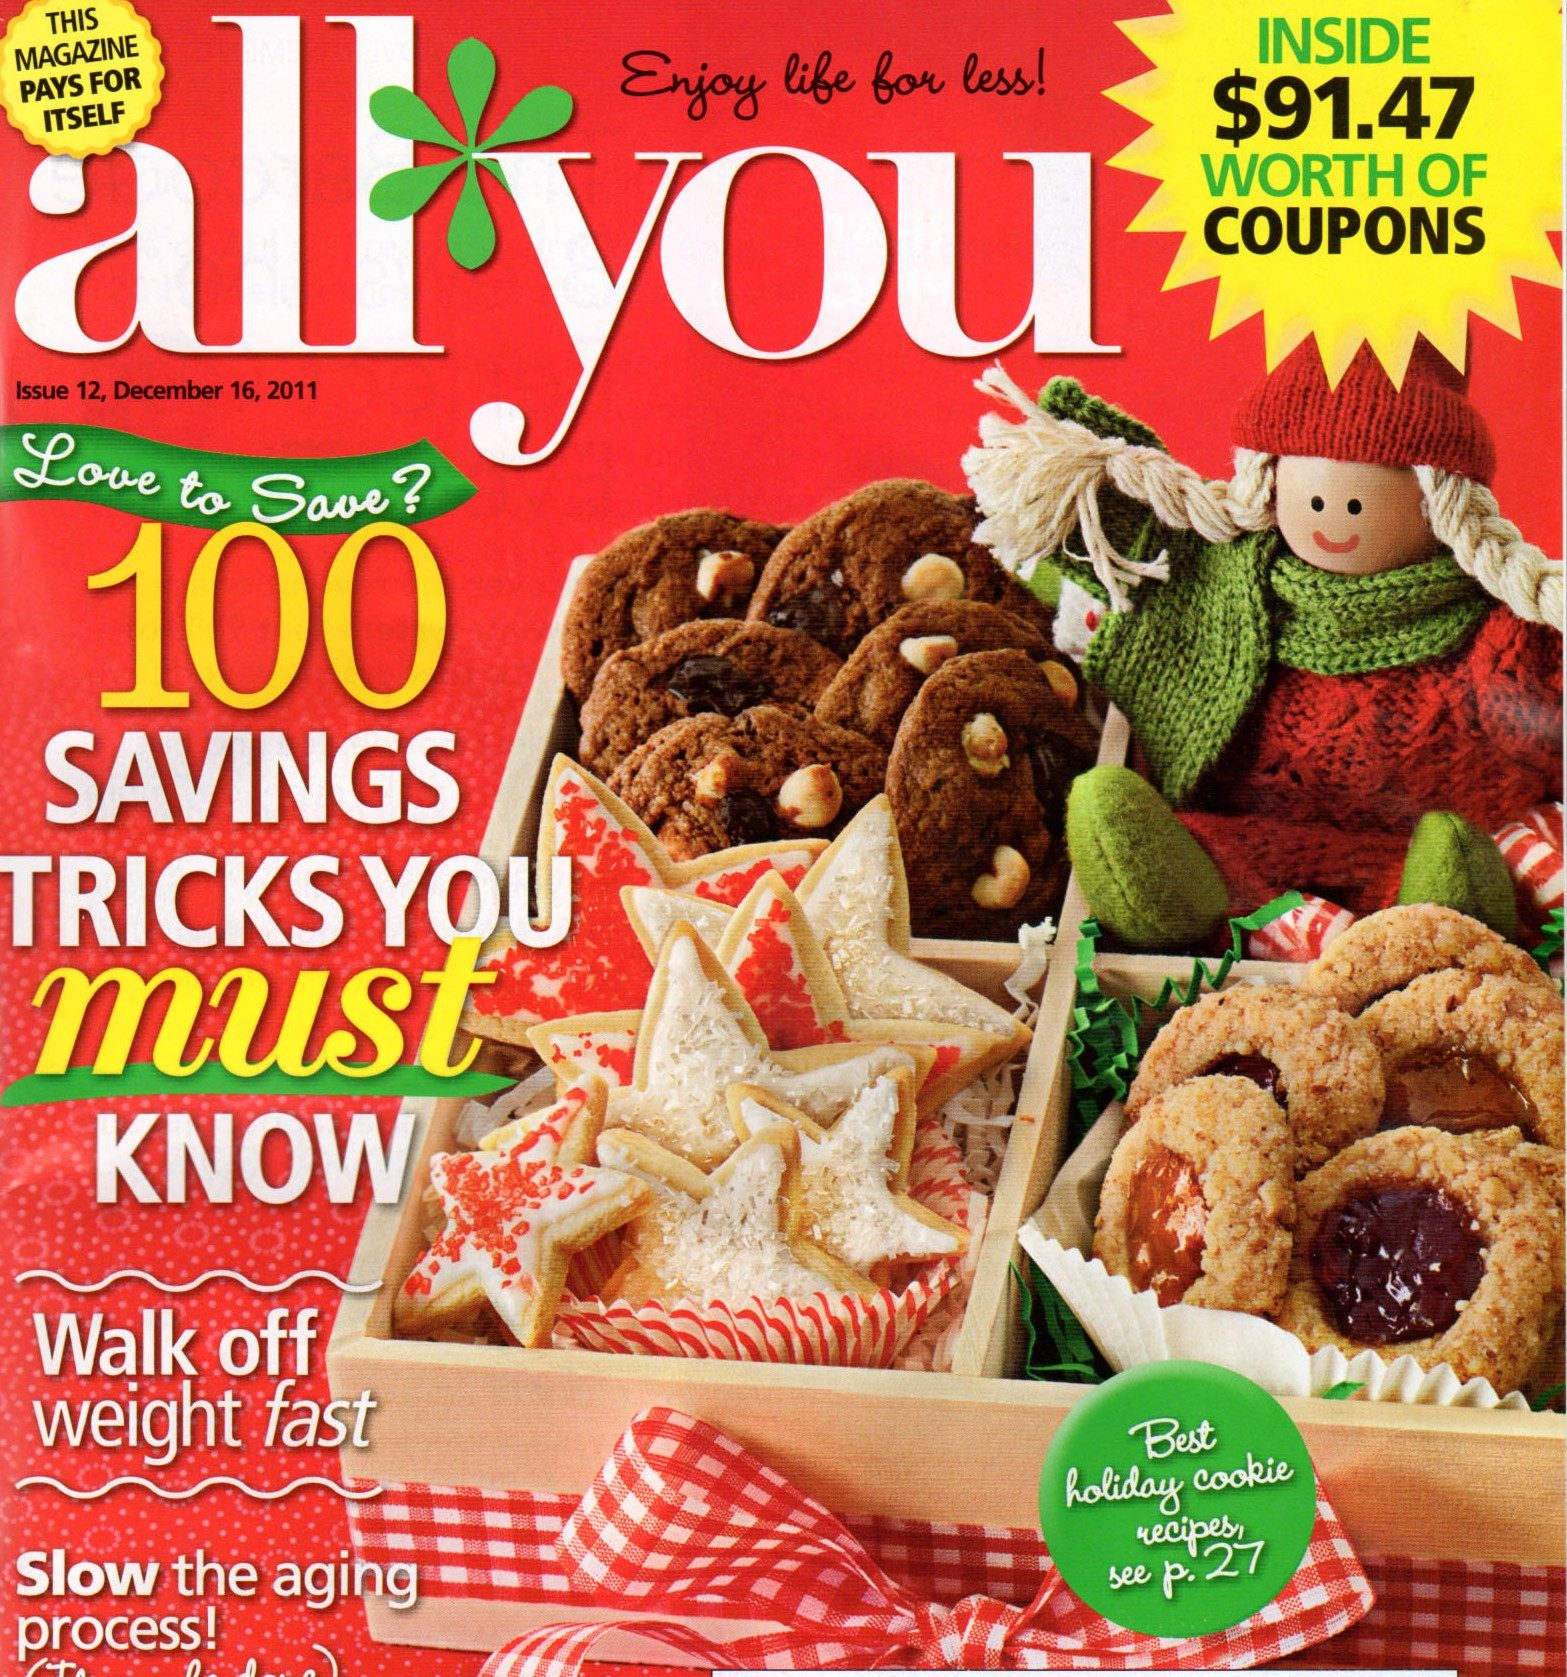 Mommysavers in December All You Magazine:  Stick to Your Holiday Budget